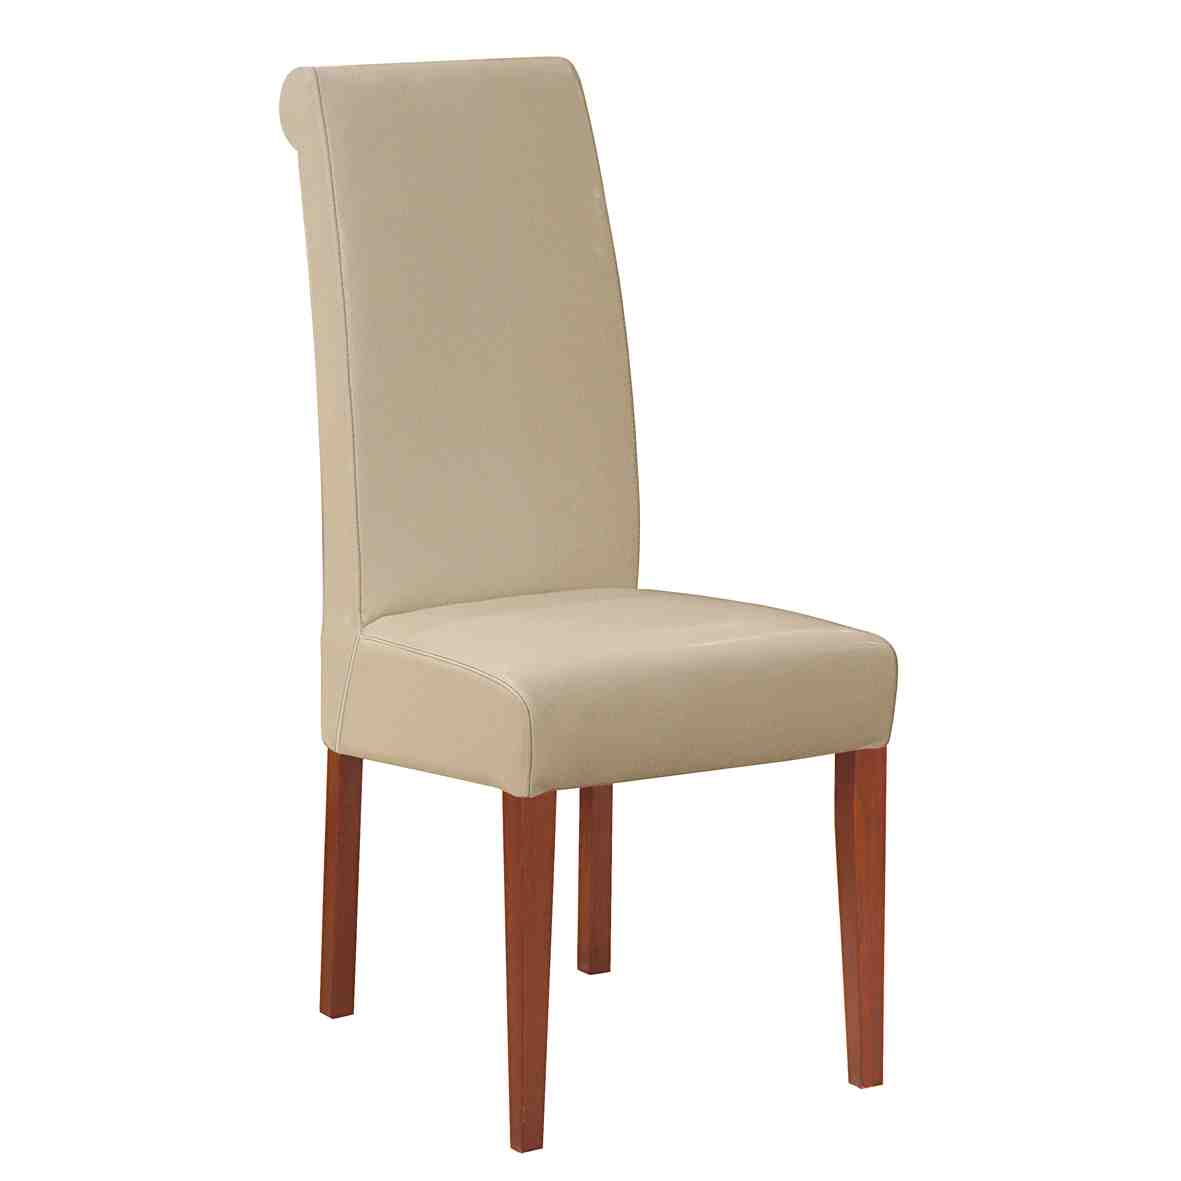 Padded Dining Chairs  Home Furniture Design